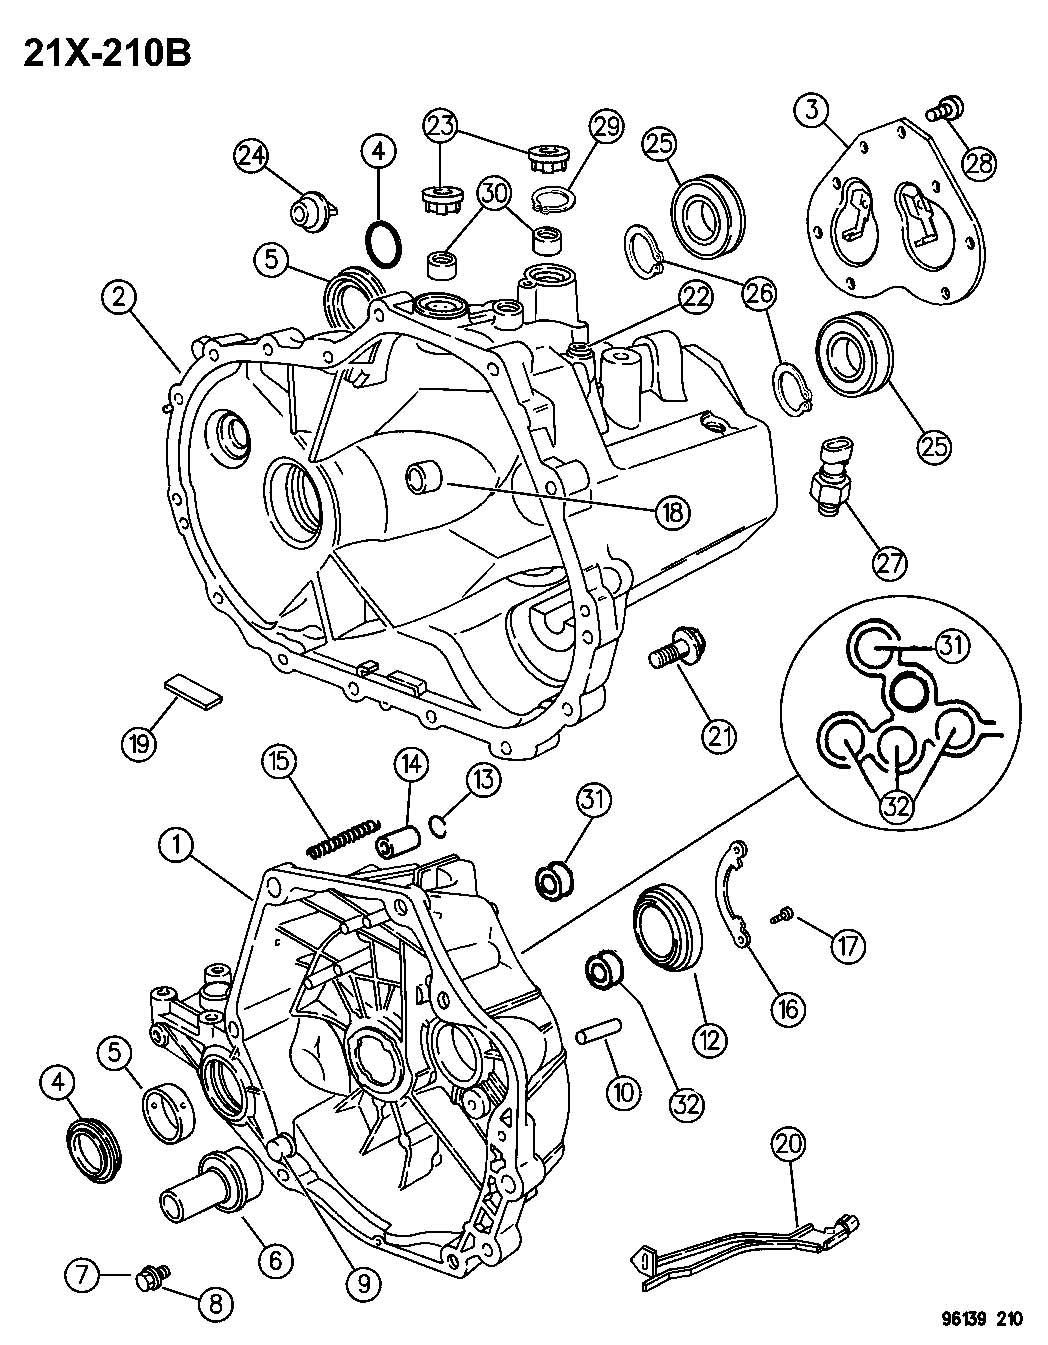 Chrysler Pt Cruiser Bearing, bearing assembly. Input